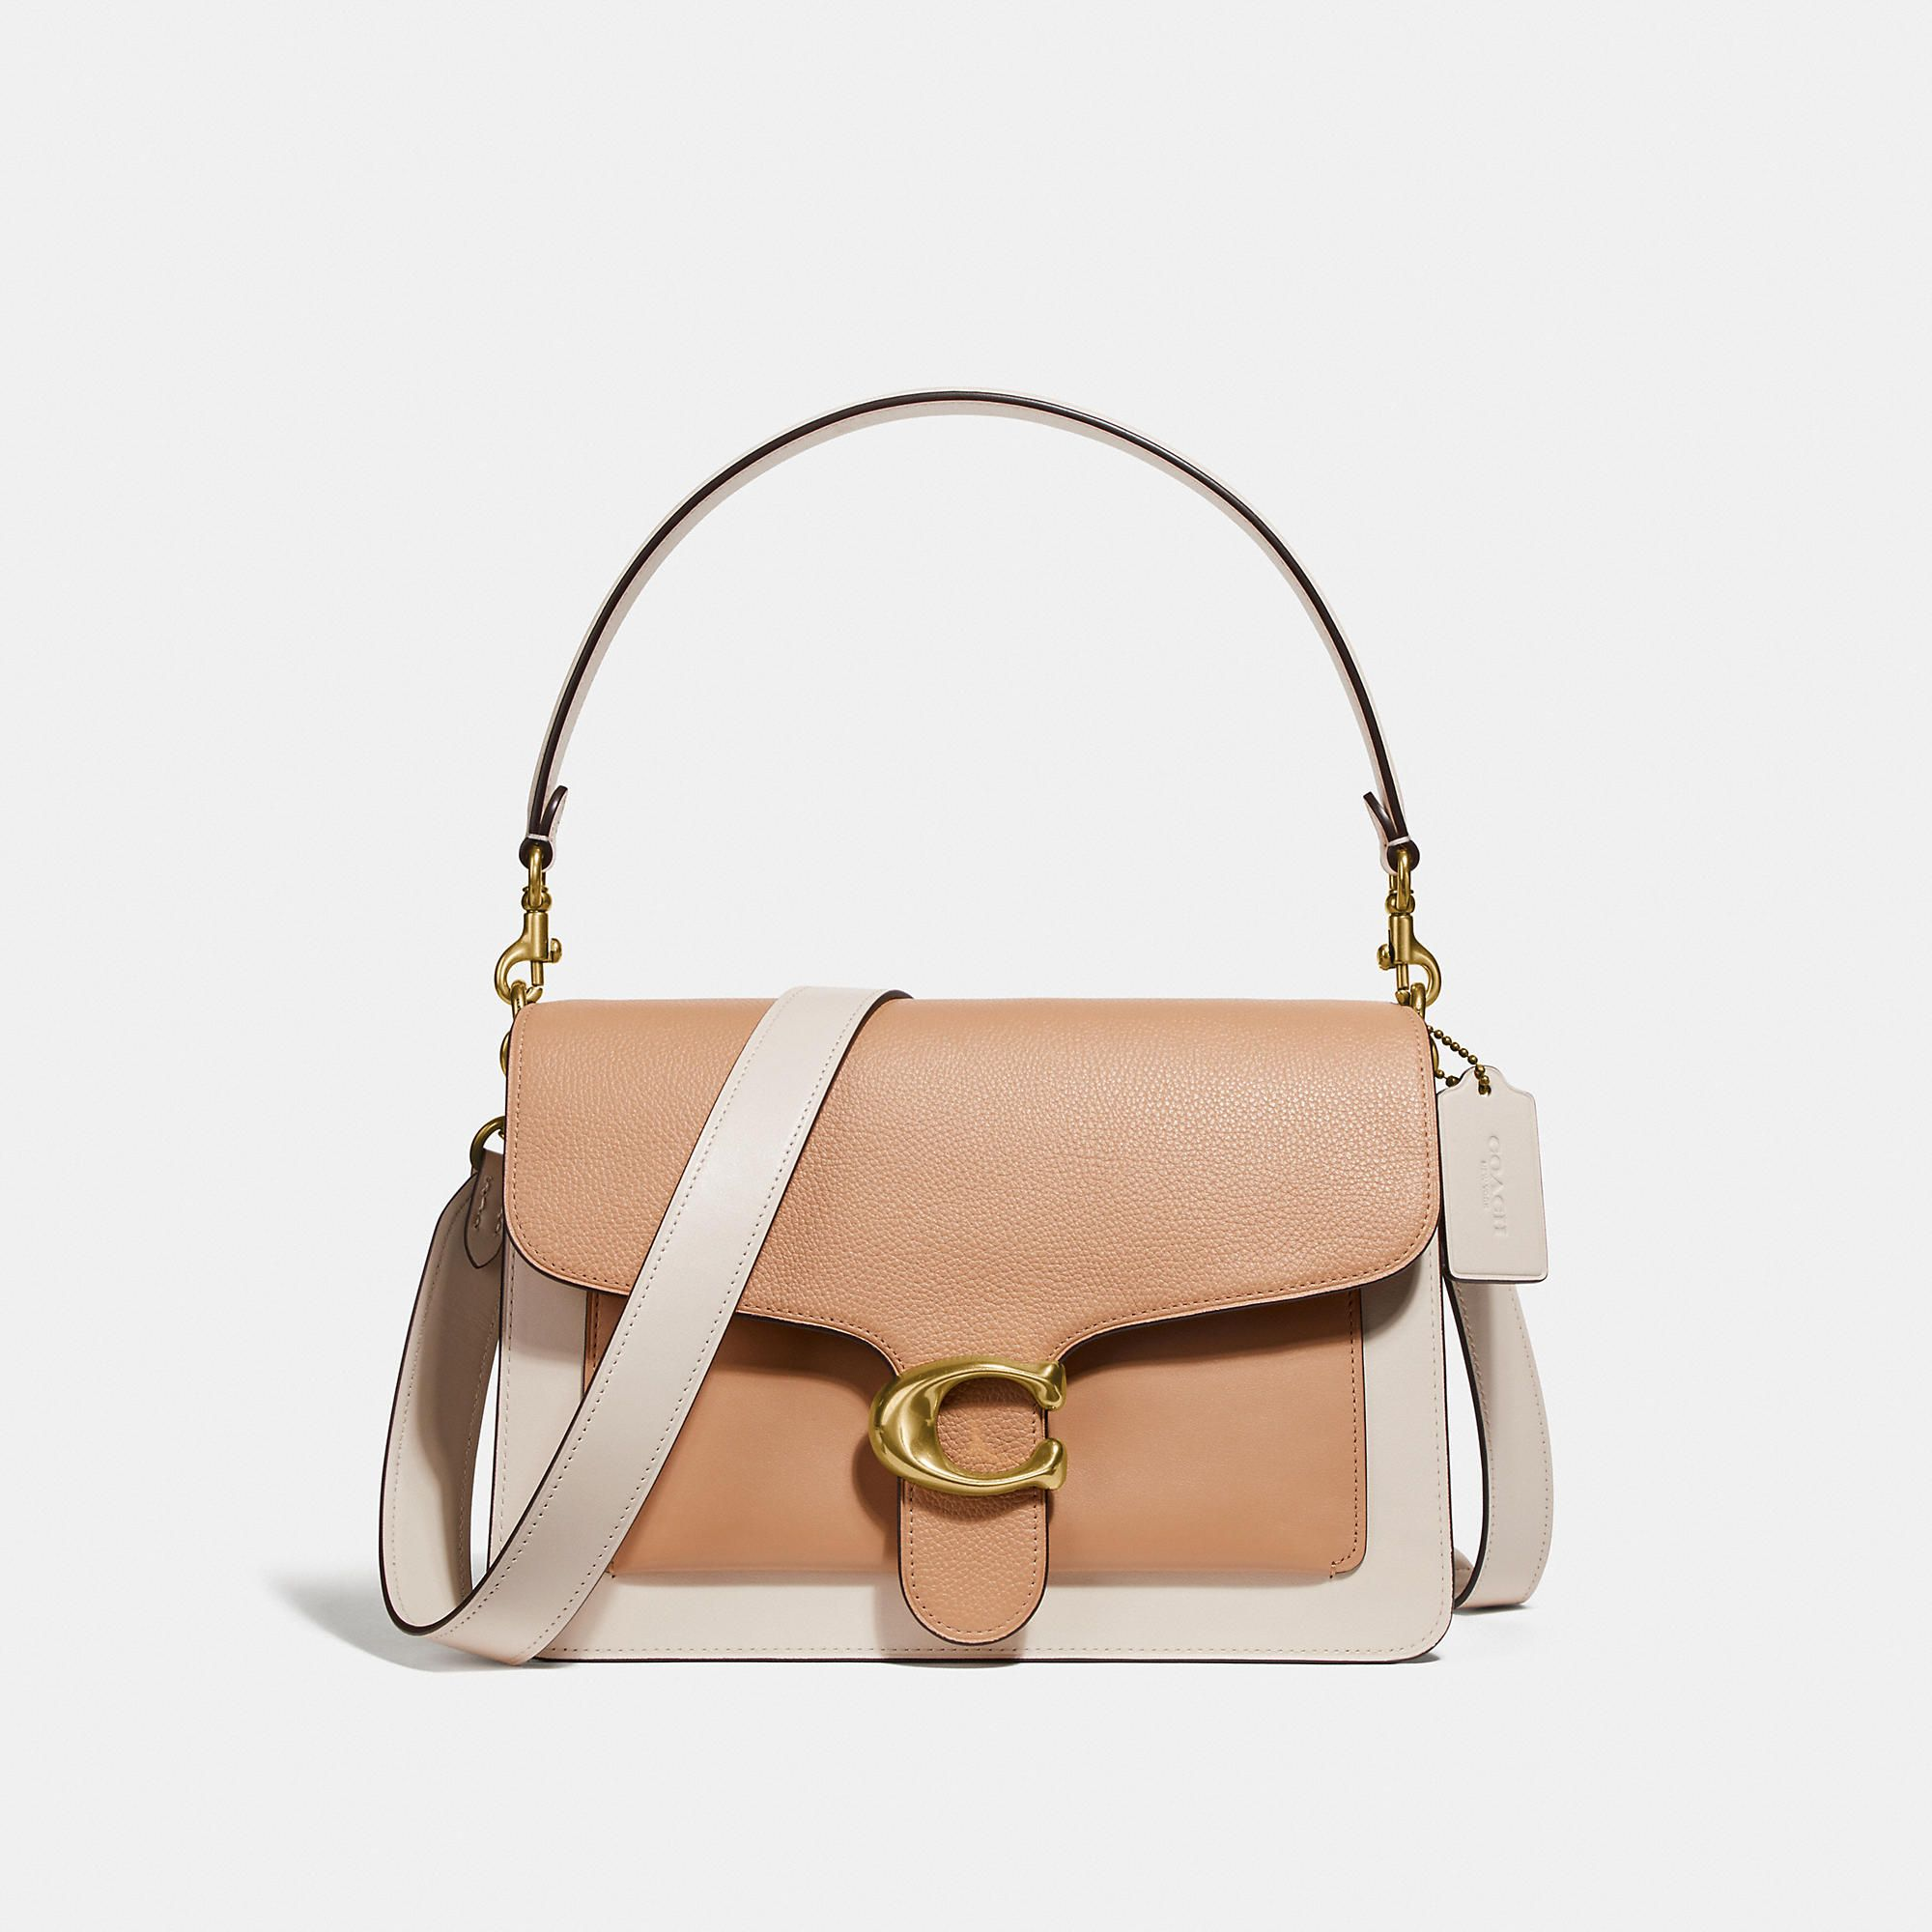 4c5f2470bdd COACH Tabby Shoulder Bag In Colorblock With Snakeskin Detail ...